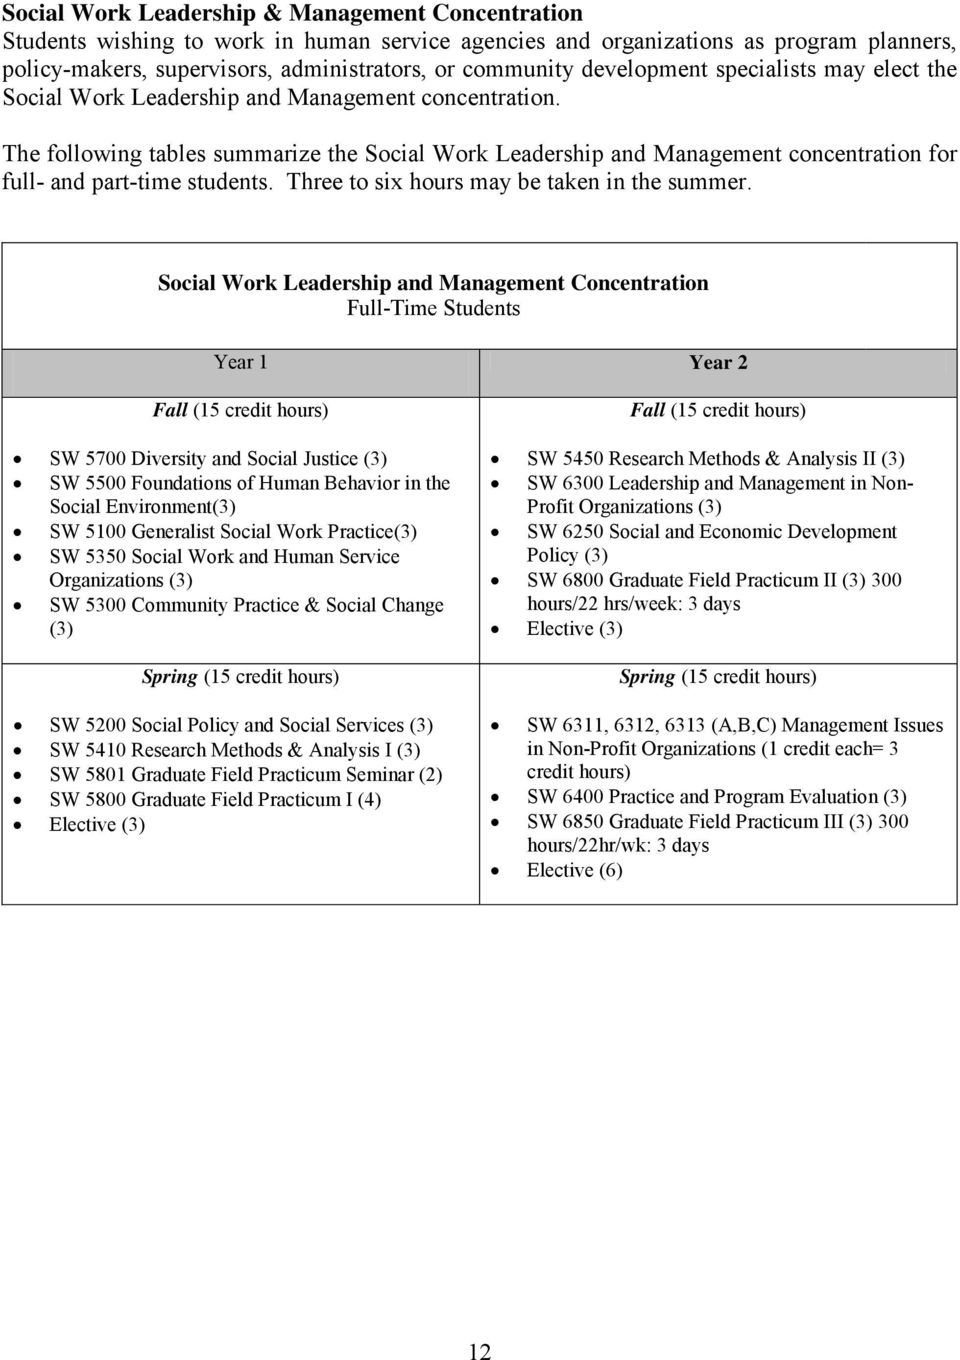 The following tables summarize the Social Work Leadership and Management concentration for full- and part-time students. Three to six hours may be taken in the summer.